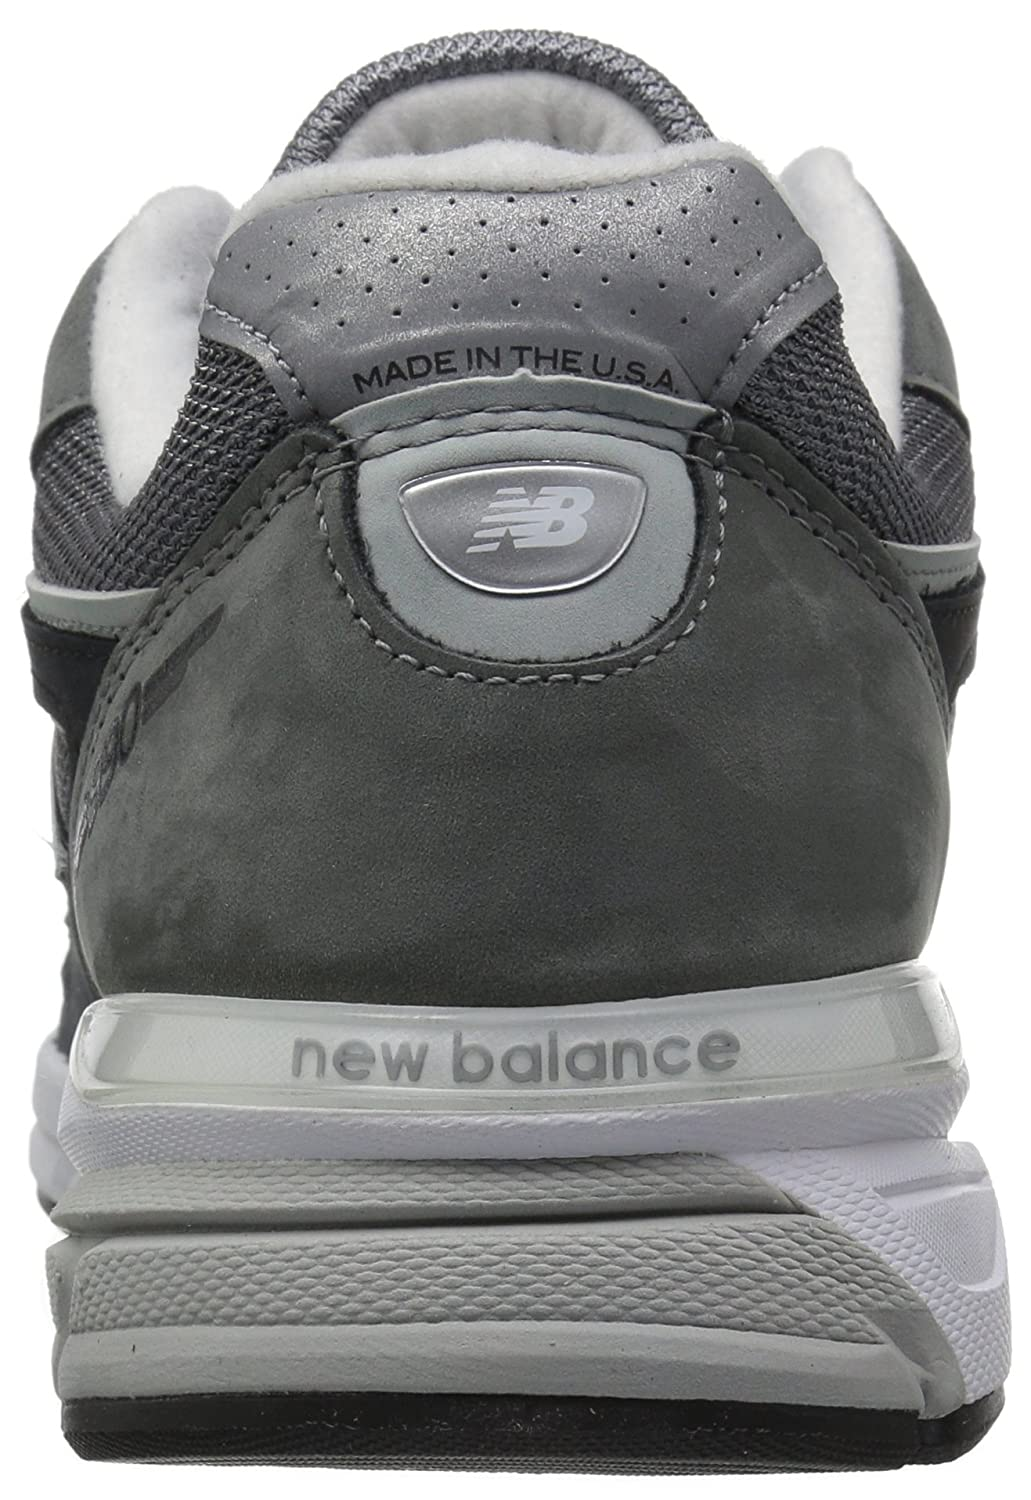 New-Balance-990-990v4-Classicc-Retro-Fashion-Sneaker-Made-in-USA thumbnail 57